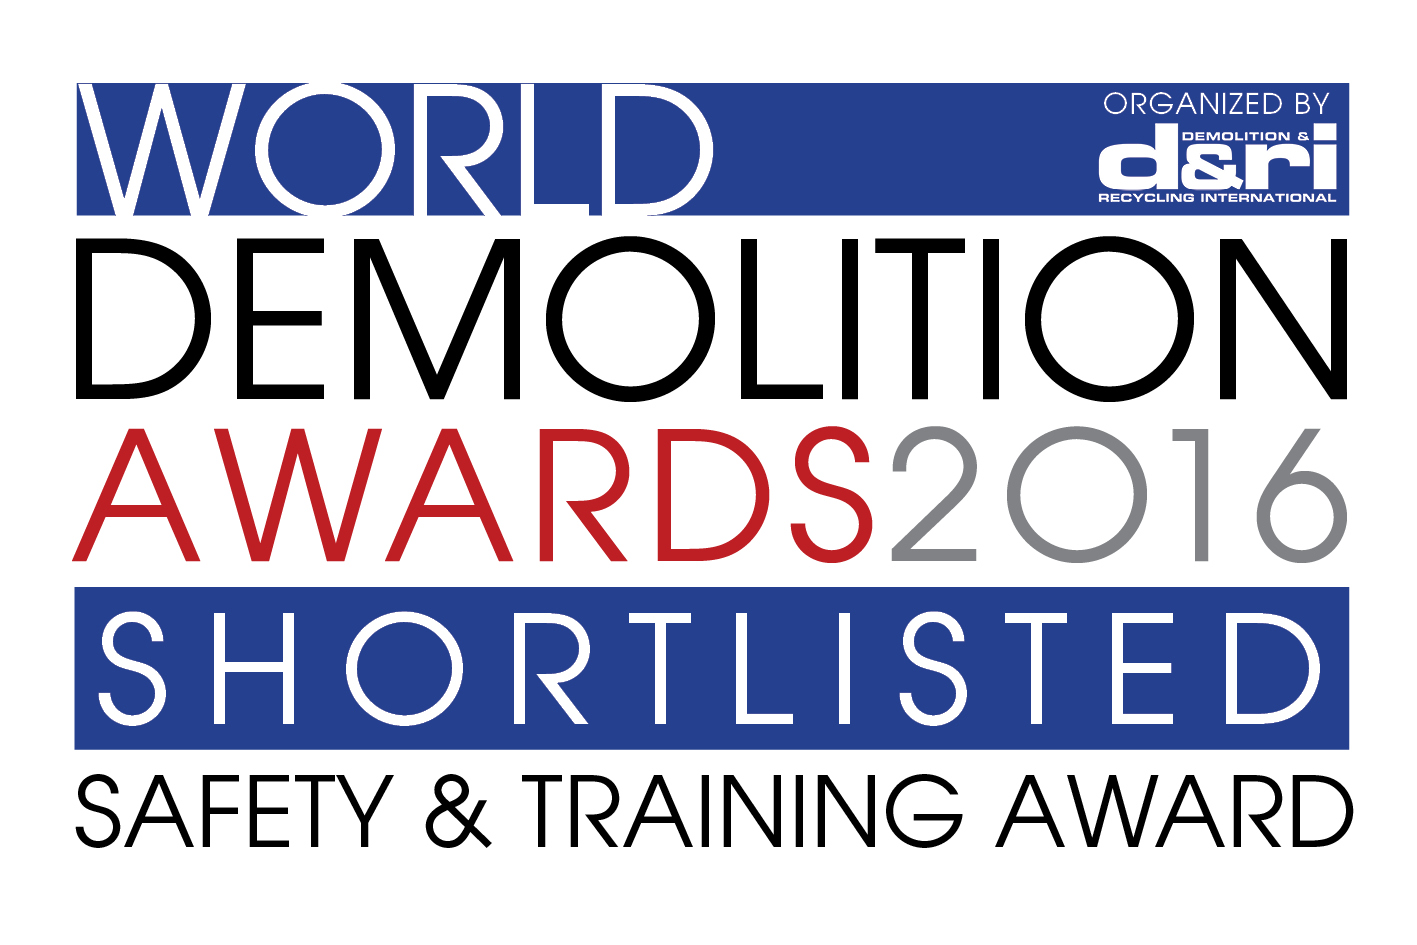 Lloyd's Construction Services, Inc. is one of eight demolition contractors up for the global award.